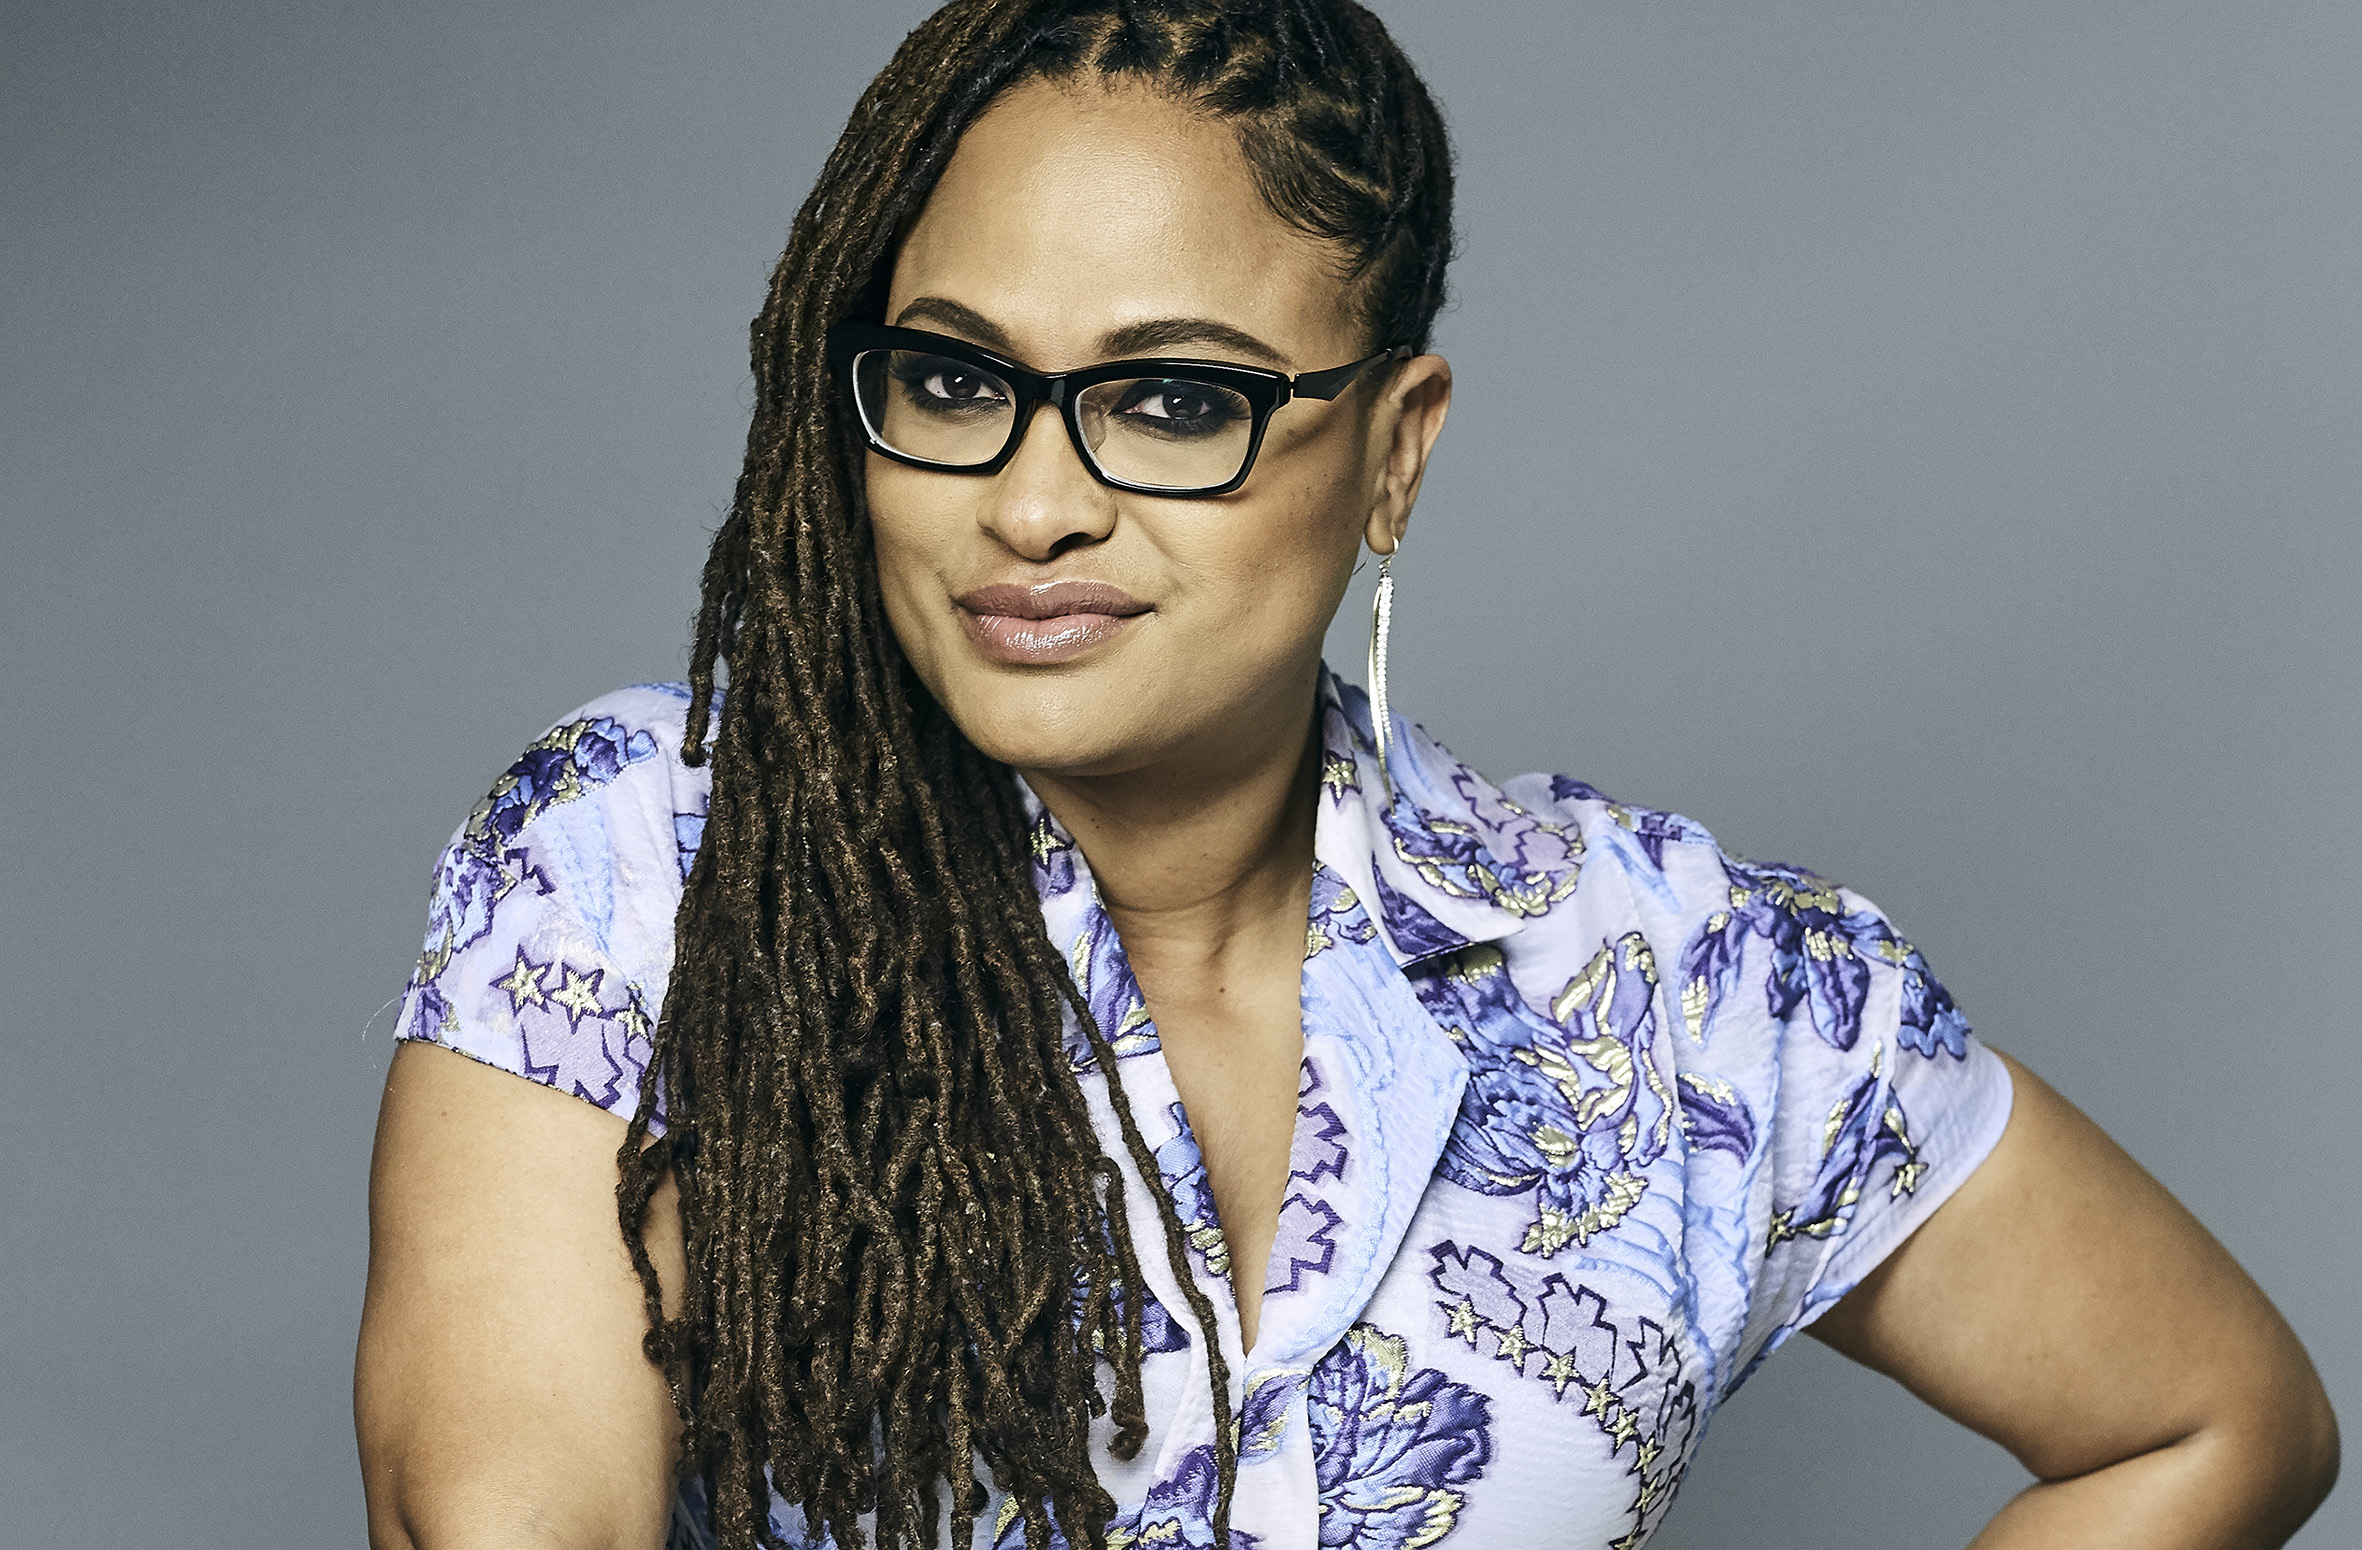 Ava DuVernay on A Wrinkle in Time and change in Hollywood